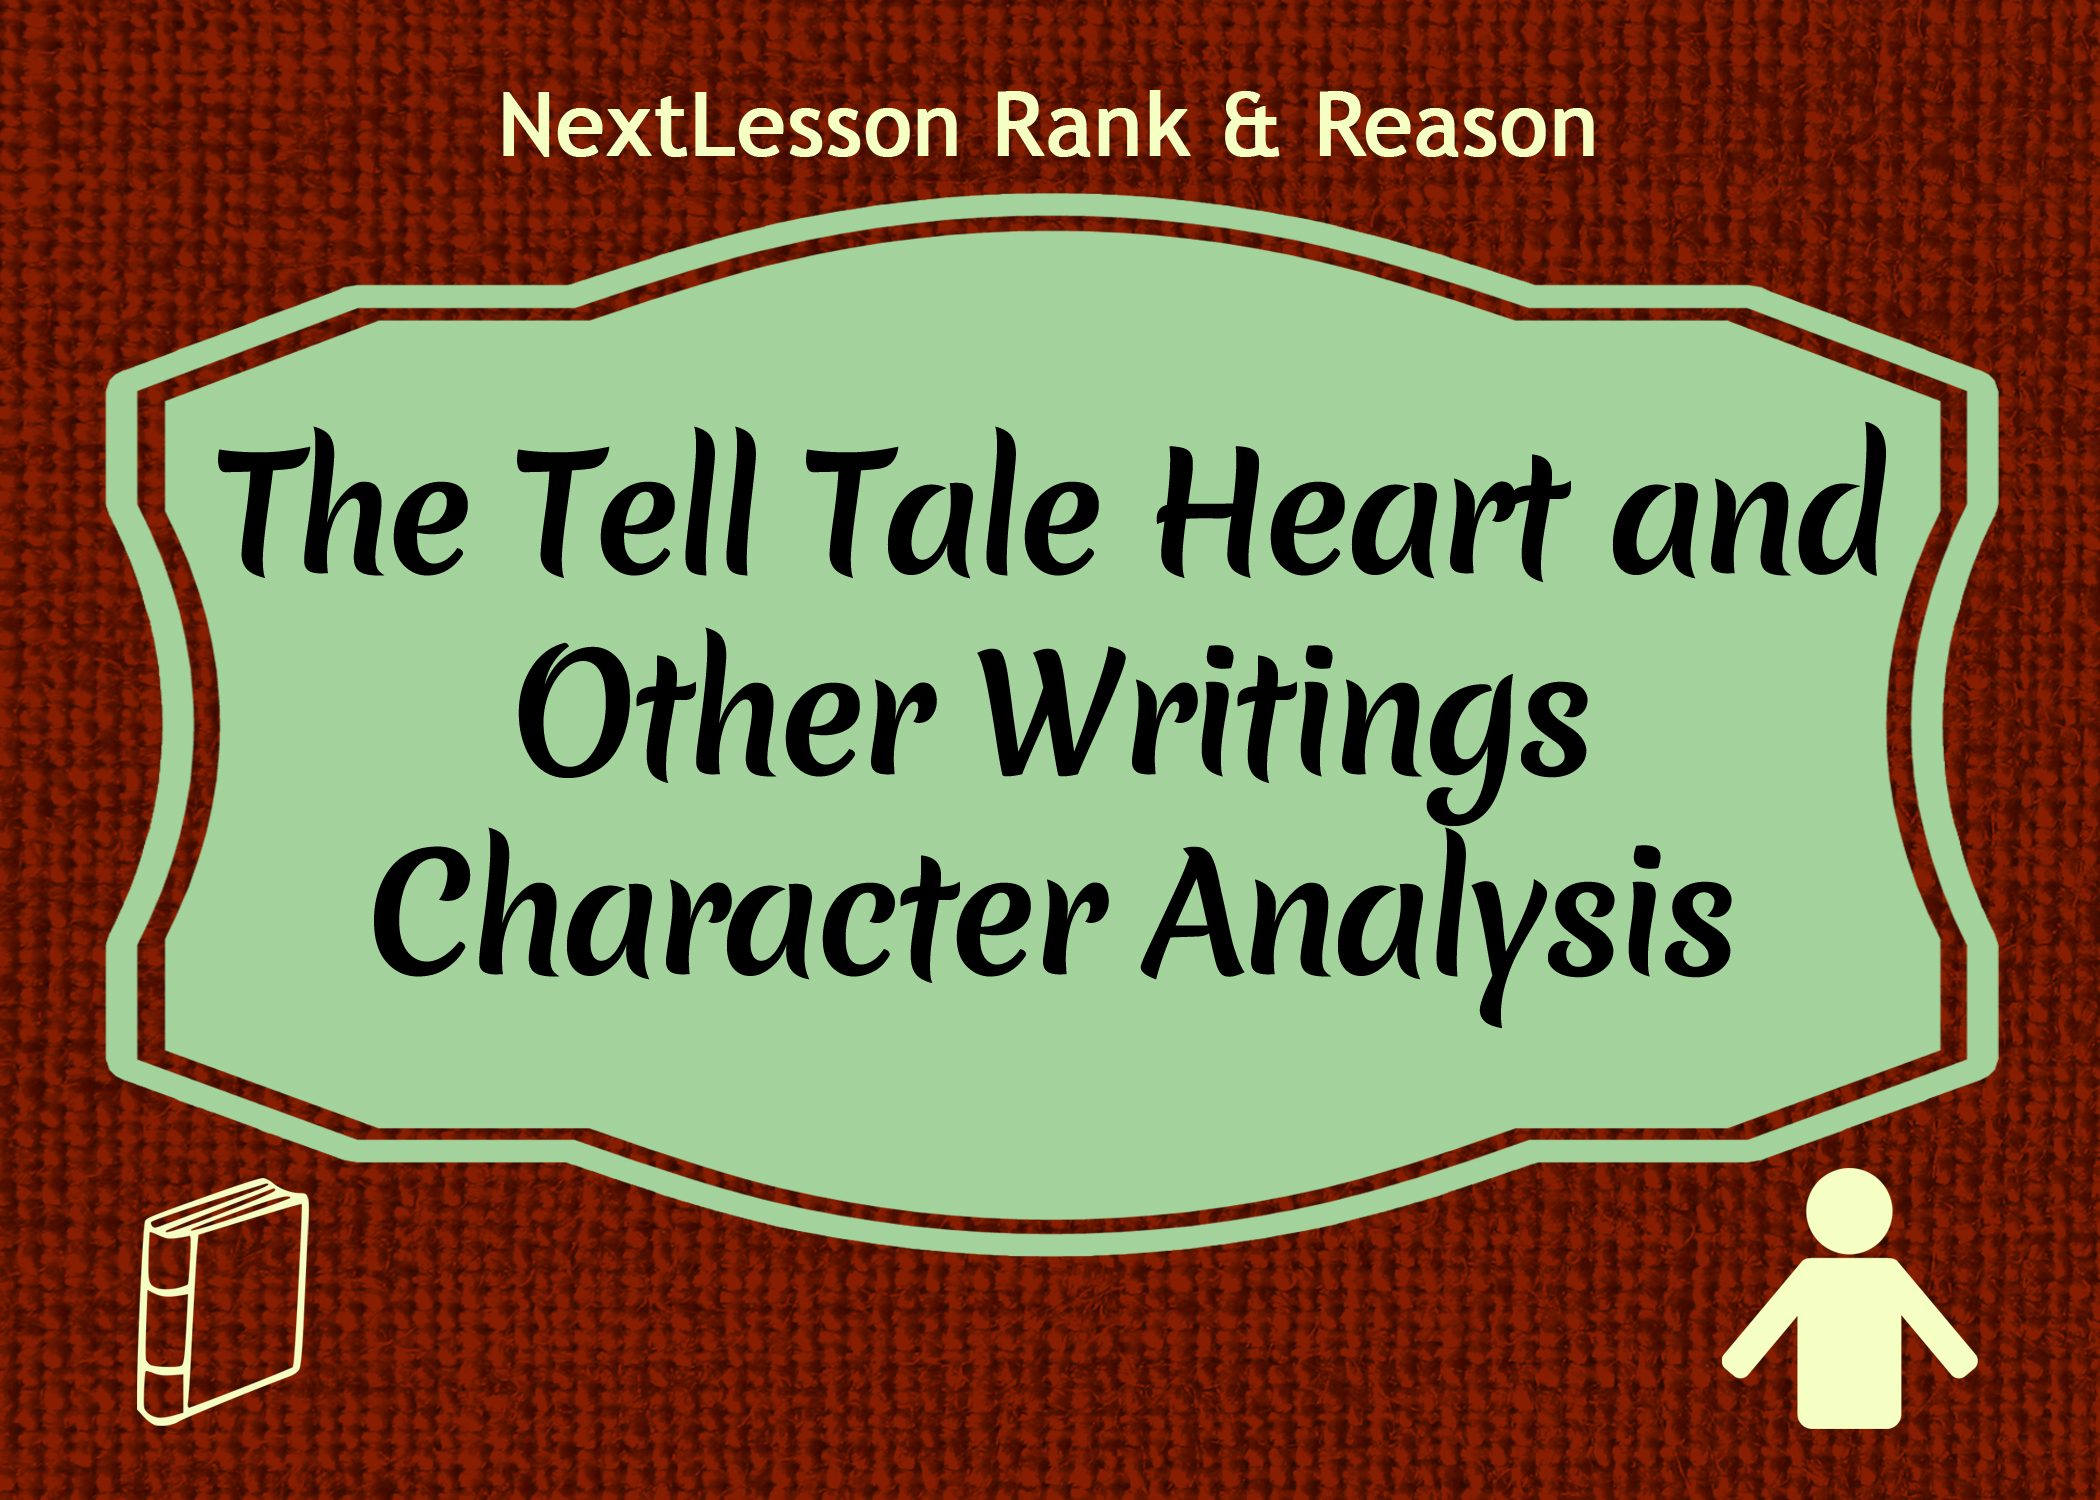 an analysis of the tell tale heart